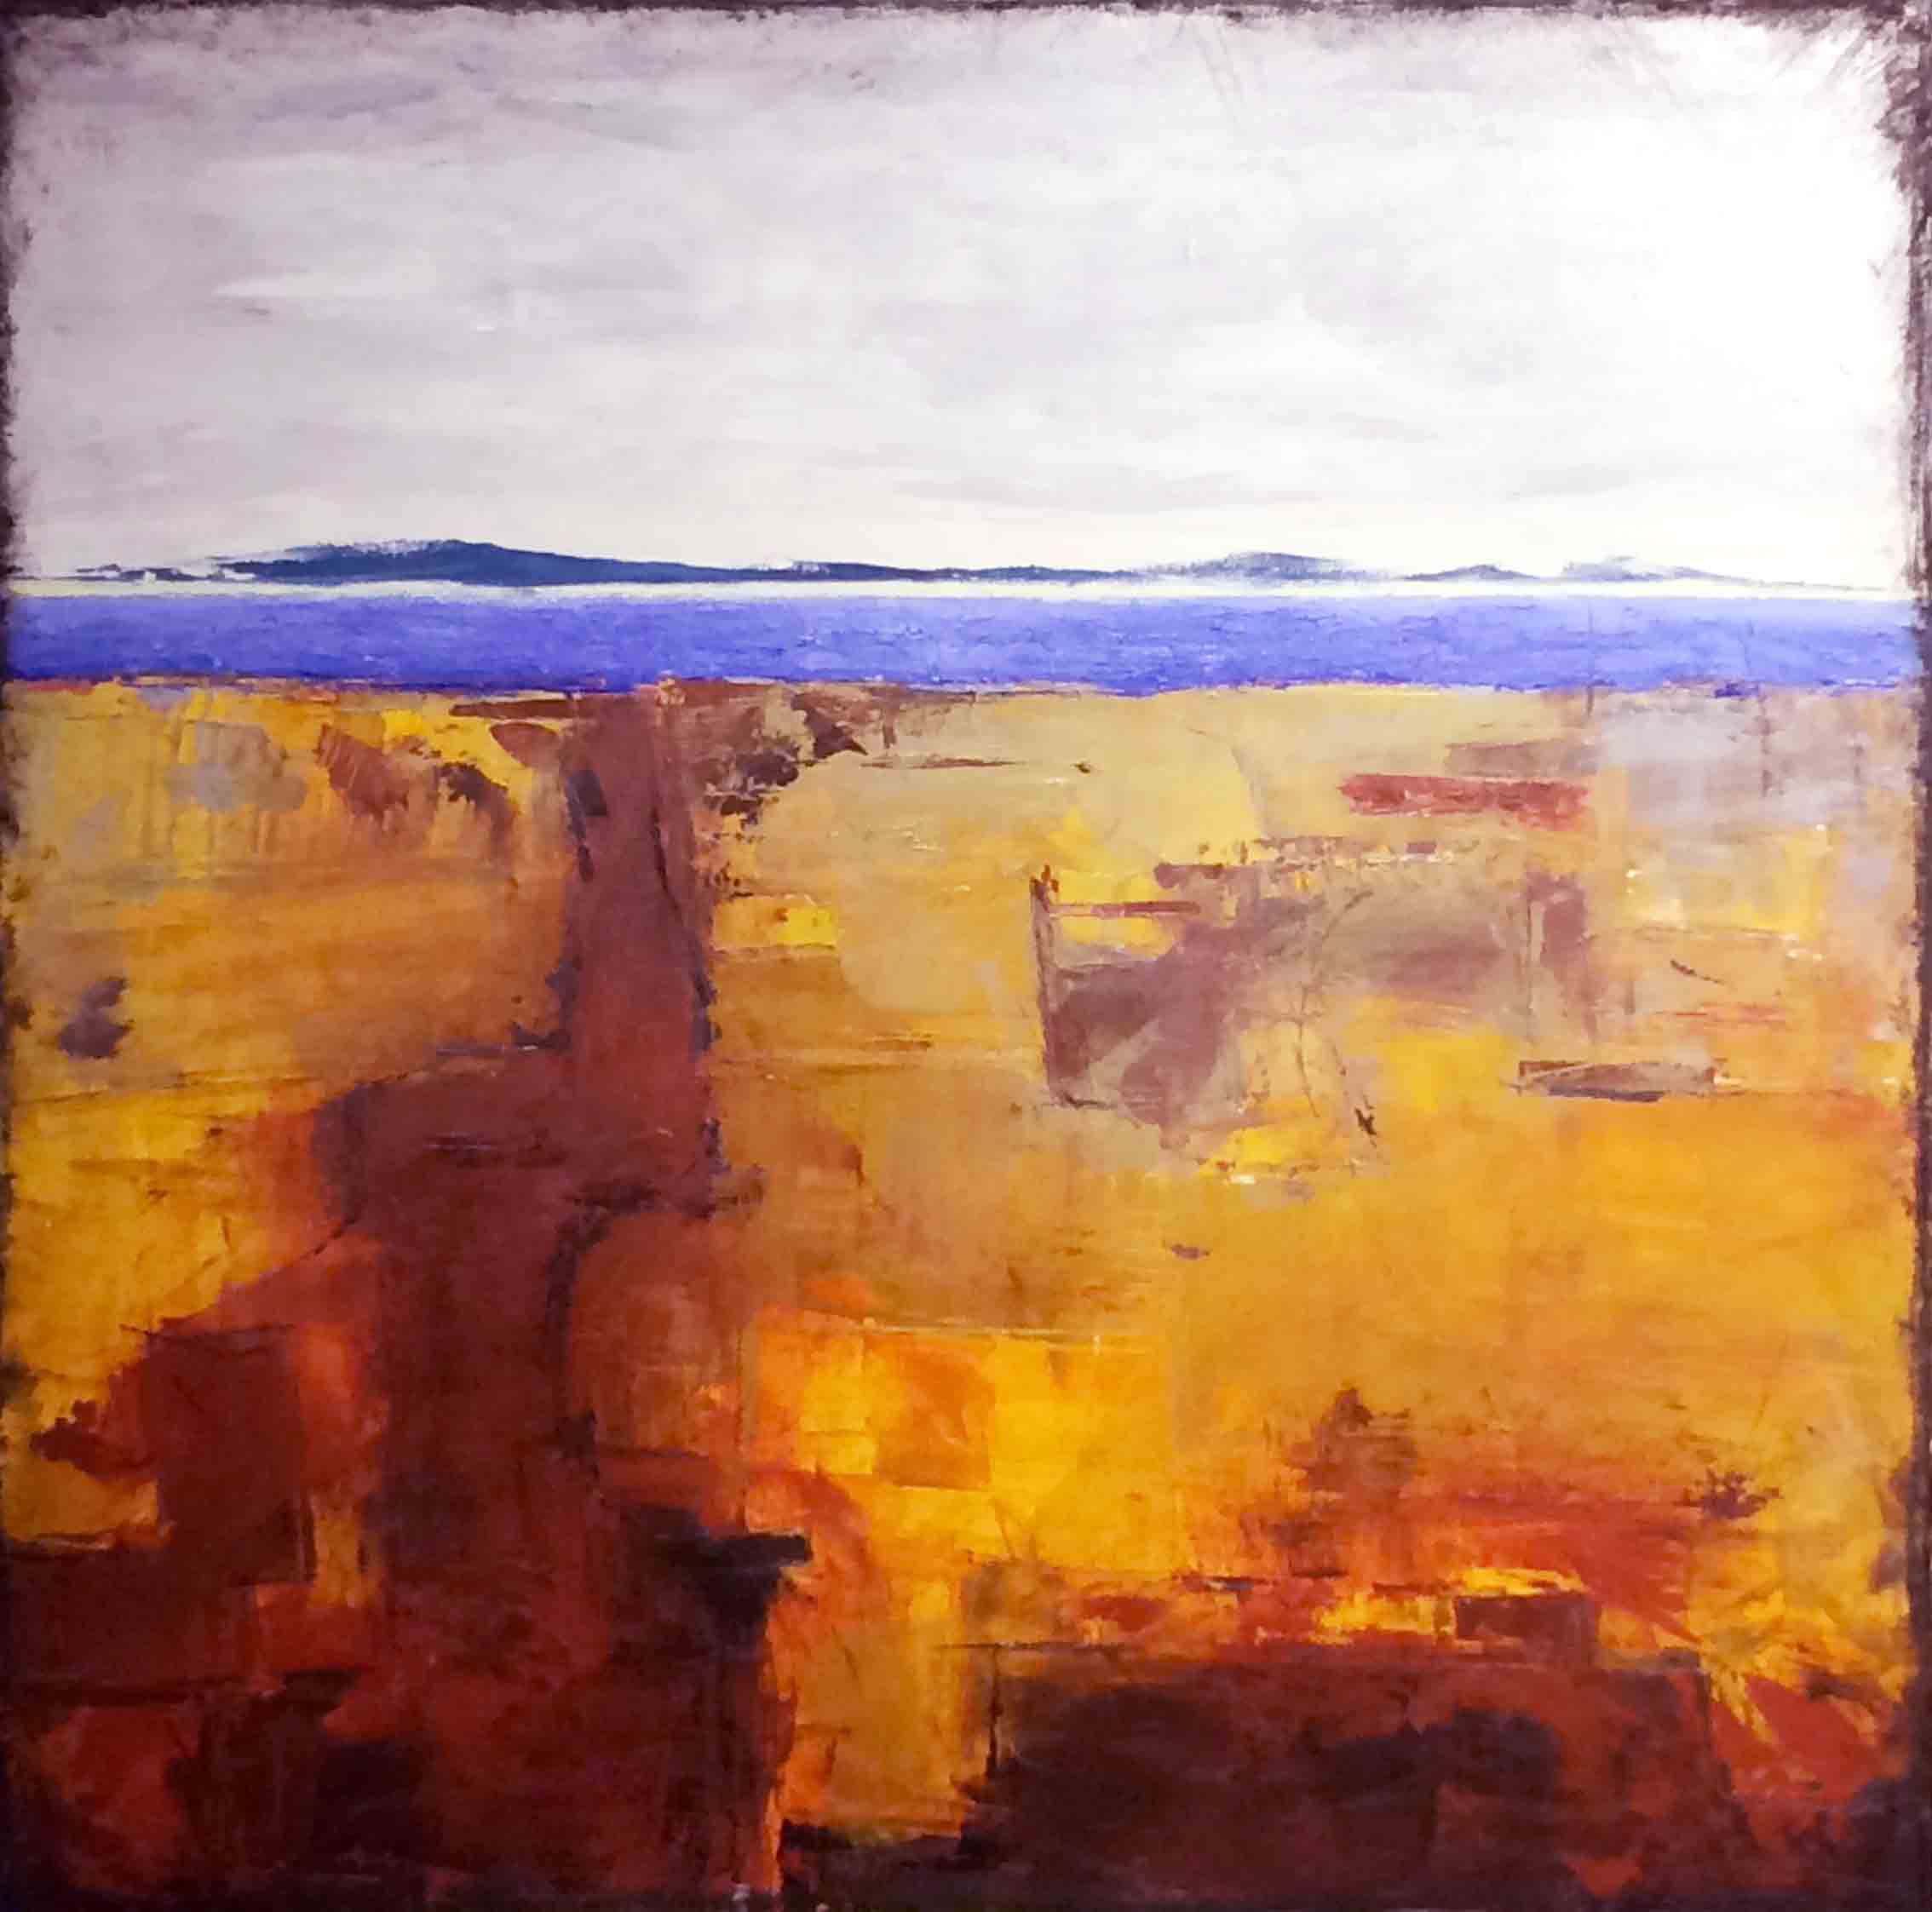 NorthEast Passage 48x48